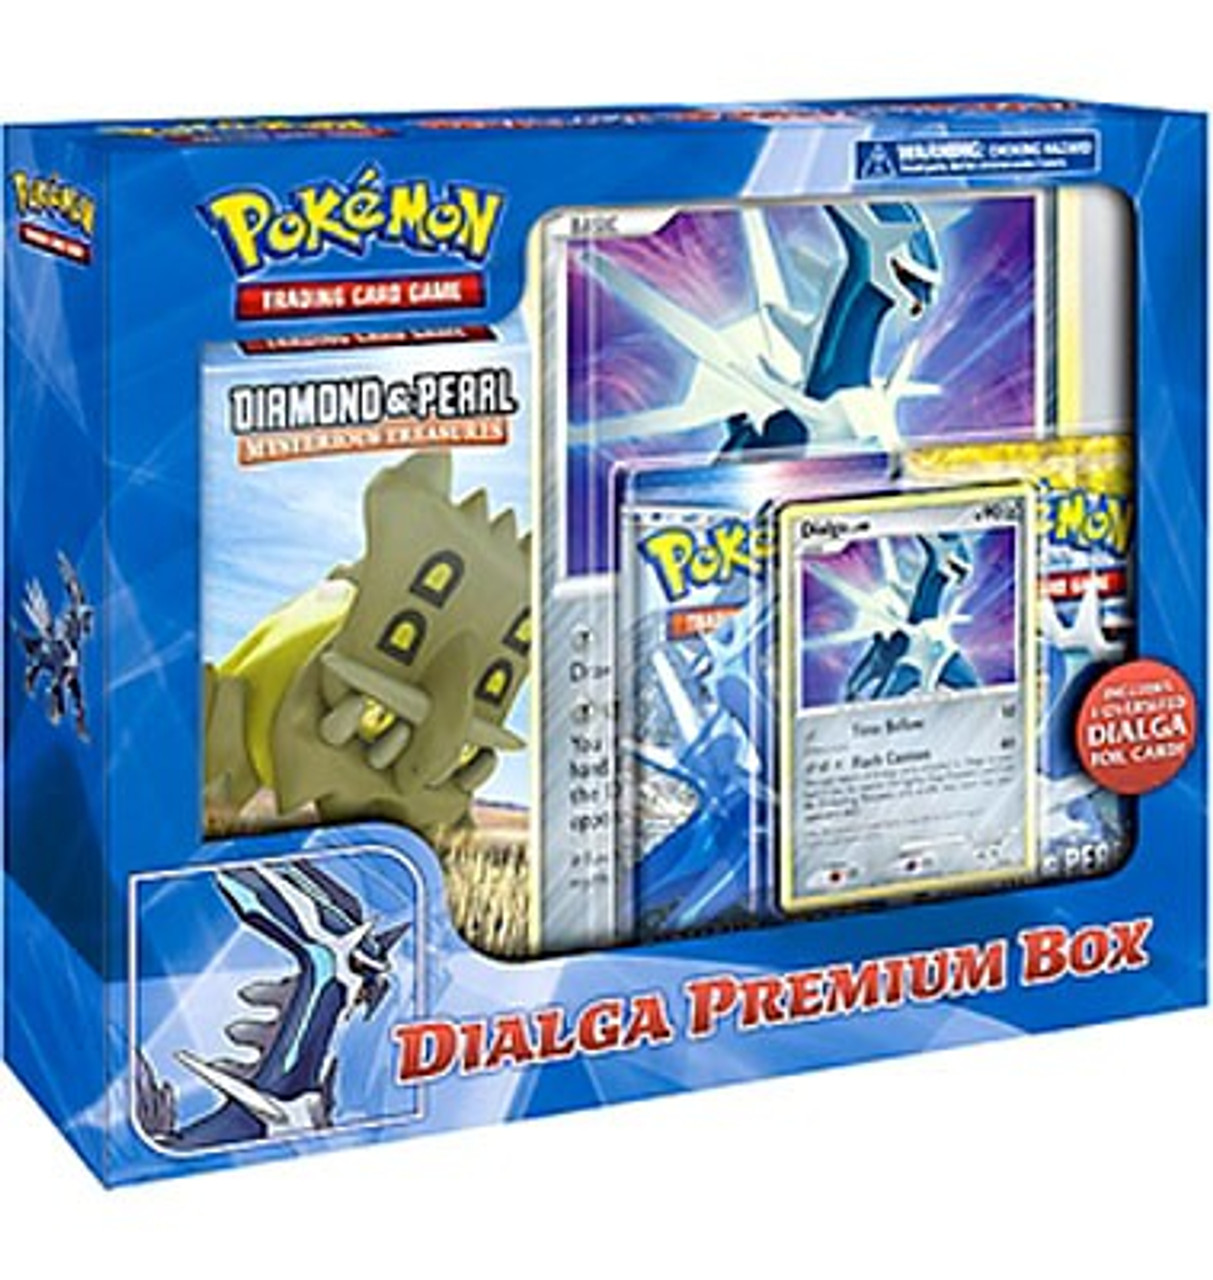 Pokemon Diamond & Pearl Dialga Premium Box